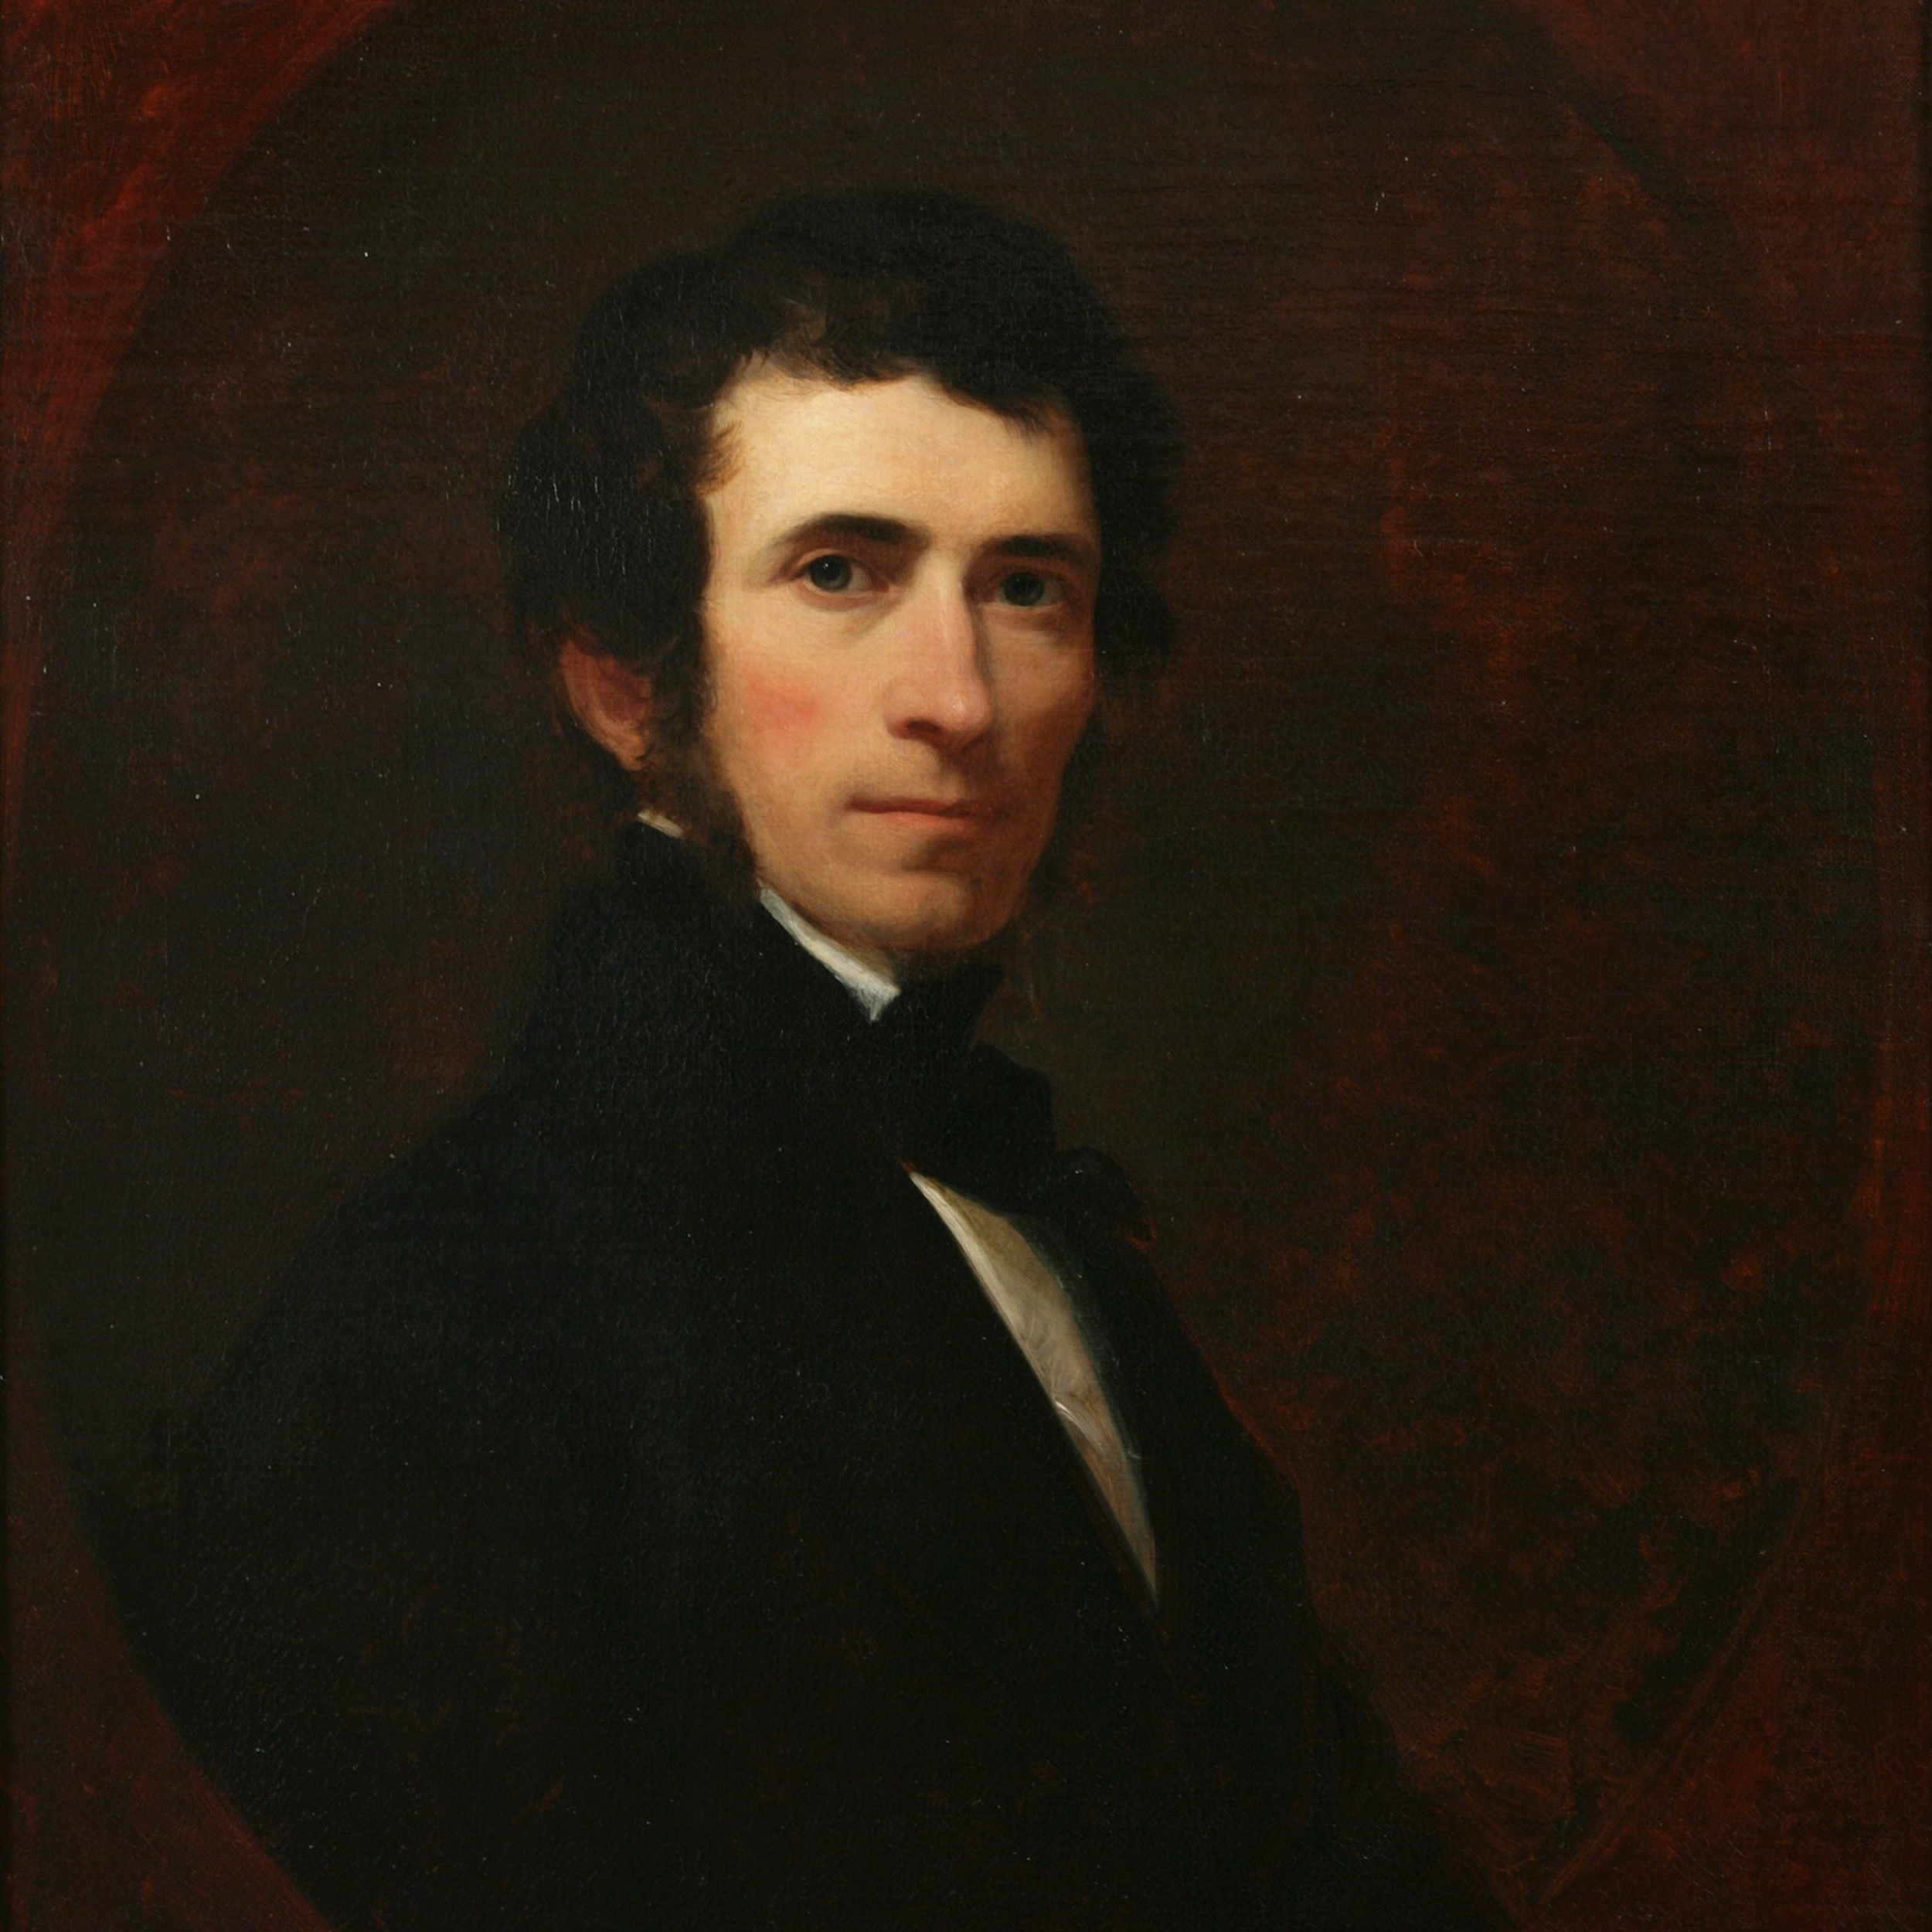 Asher B. Durand (1796-1886)   American engraver, portraitist, and Hudson River School landscape painter who, along with John Trumbull, bought one of Cole's paintings in 1825. Durand, Cole, and poet William Cullen Bryant maintained a close friendship throughout their lives, joined by their mutual involvement in American arts and culture. Durand helped to found the National Academy of Design, acting as its president from 1845-61. It was Cole who first persuaded Durand to begin landscape painting and taught him how to sketch outdoors, and together the two artists took many summer sketching trips to the Catskill, White, and Adirondack mountains. Durand painted Kindred Spirits (1849) after Cole's death, forever memorializing the friendship of the three men. See John Trumbull, Asher B. Durand and Asher B. Durand.  Visit the places that Durand painted on the Art Trail:      Platte Clove       Kaaterskill Clove    Painting: Asher Brown Durand,  Self-portait , 1835, oil on canvas, 30.1 x 25.2 in., gift of Asher B. Durand 1852, National Academy of Design.